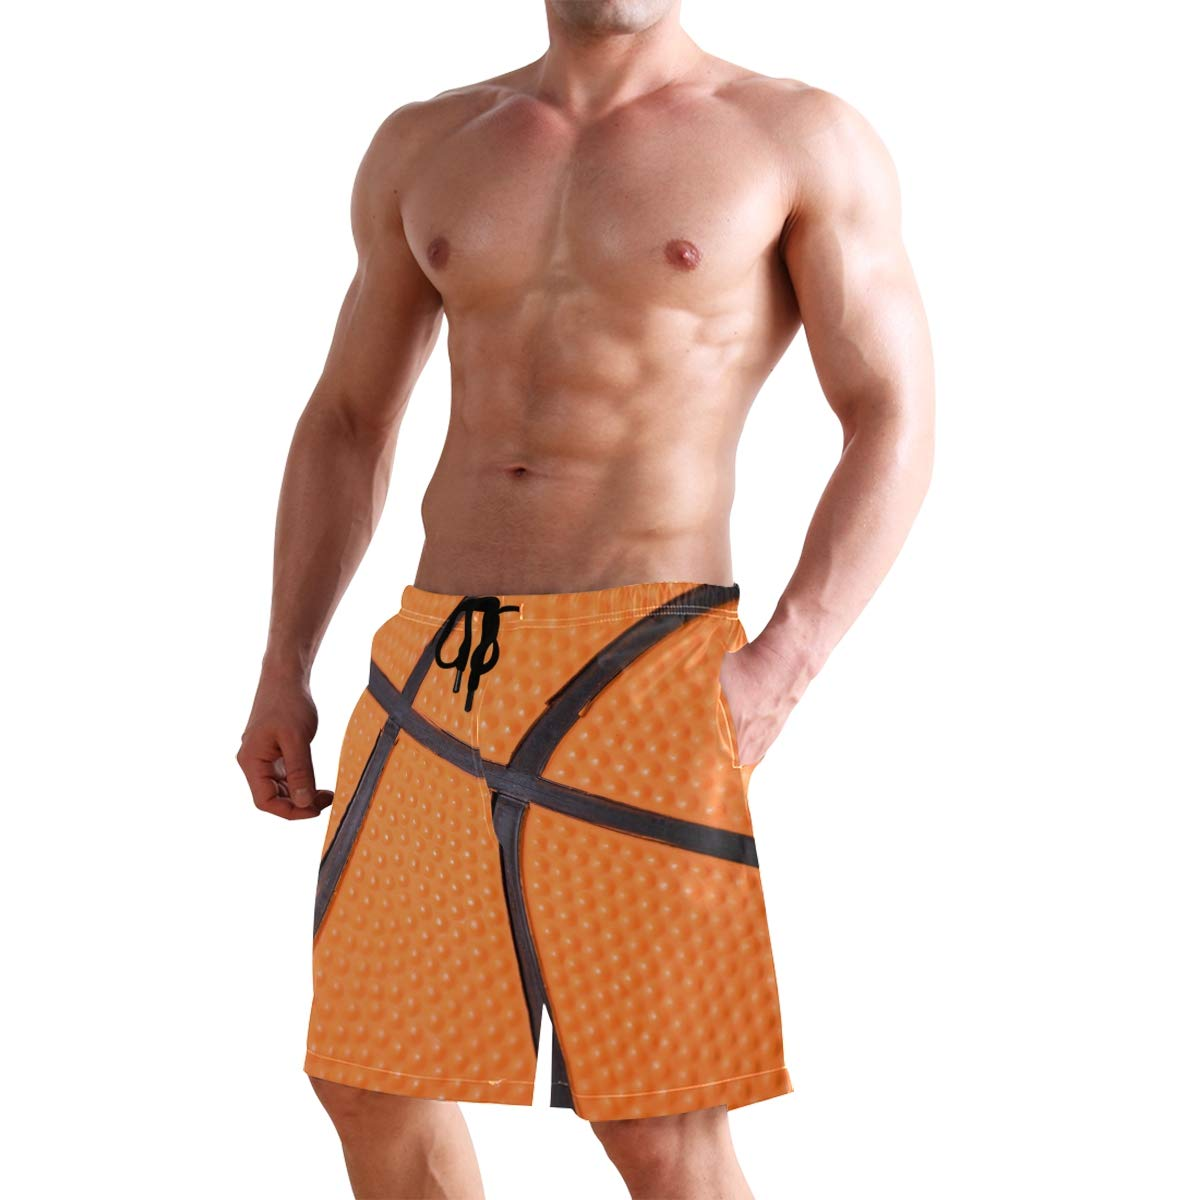 KUWT Mens Swim Trunks Sport Ball Basketball Print Quick Dry Beach Shorts Summer Surf Board Shorts